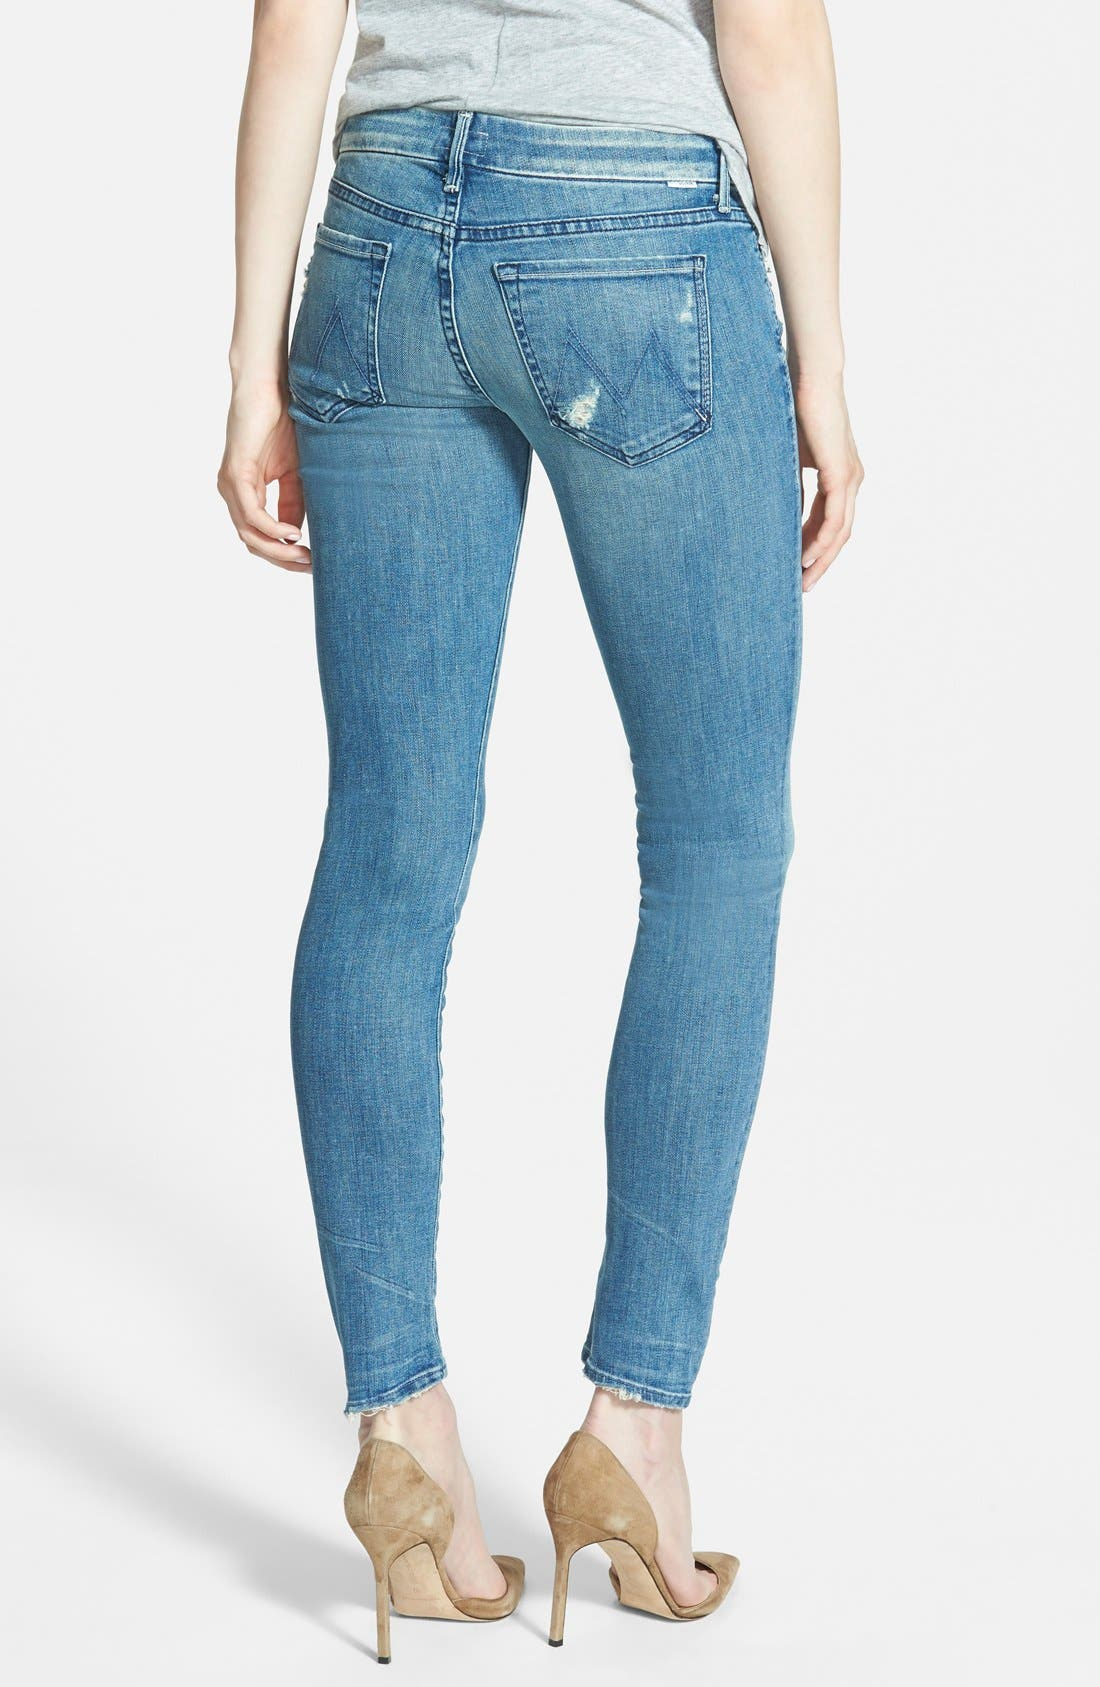 'The Looker' Skinny Stretch Jeans,                             Alternate thumbnail 3, color,                             GRAFFITI GIRL